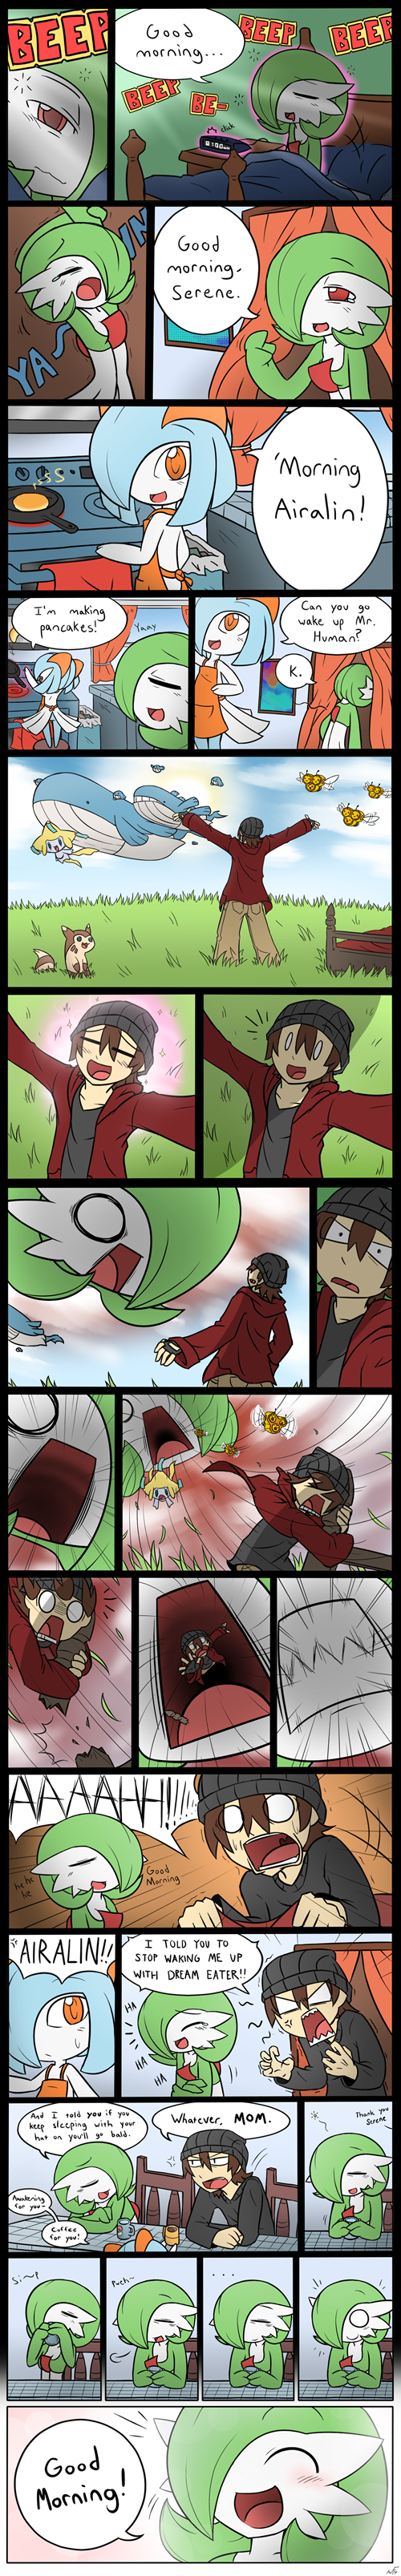 Pokémon,dream eater,gardevoir,web comics